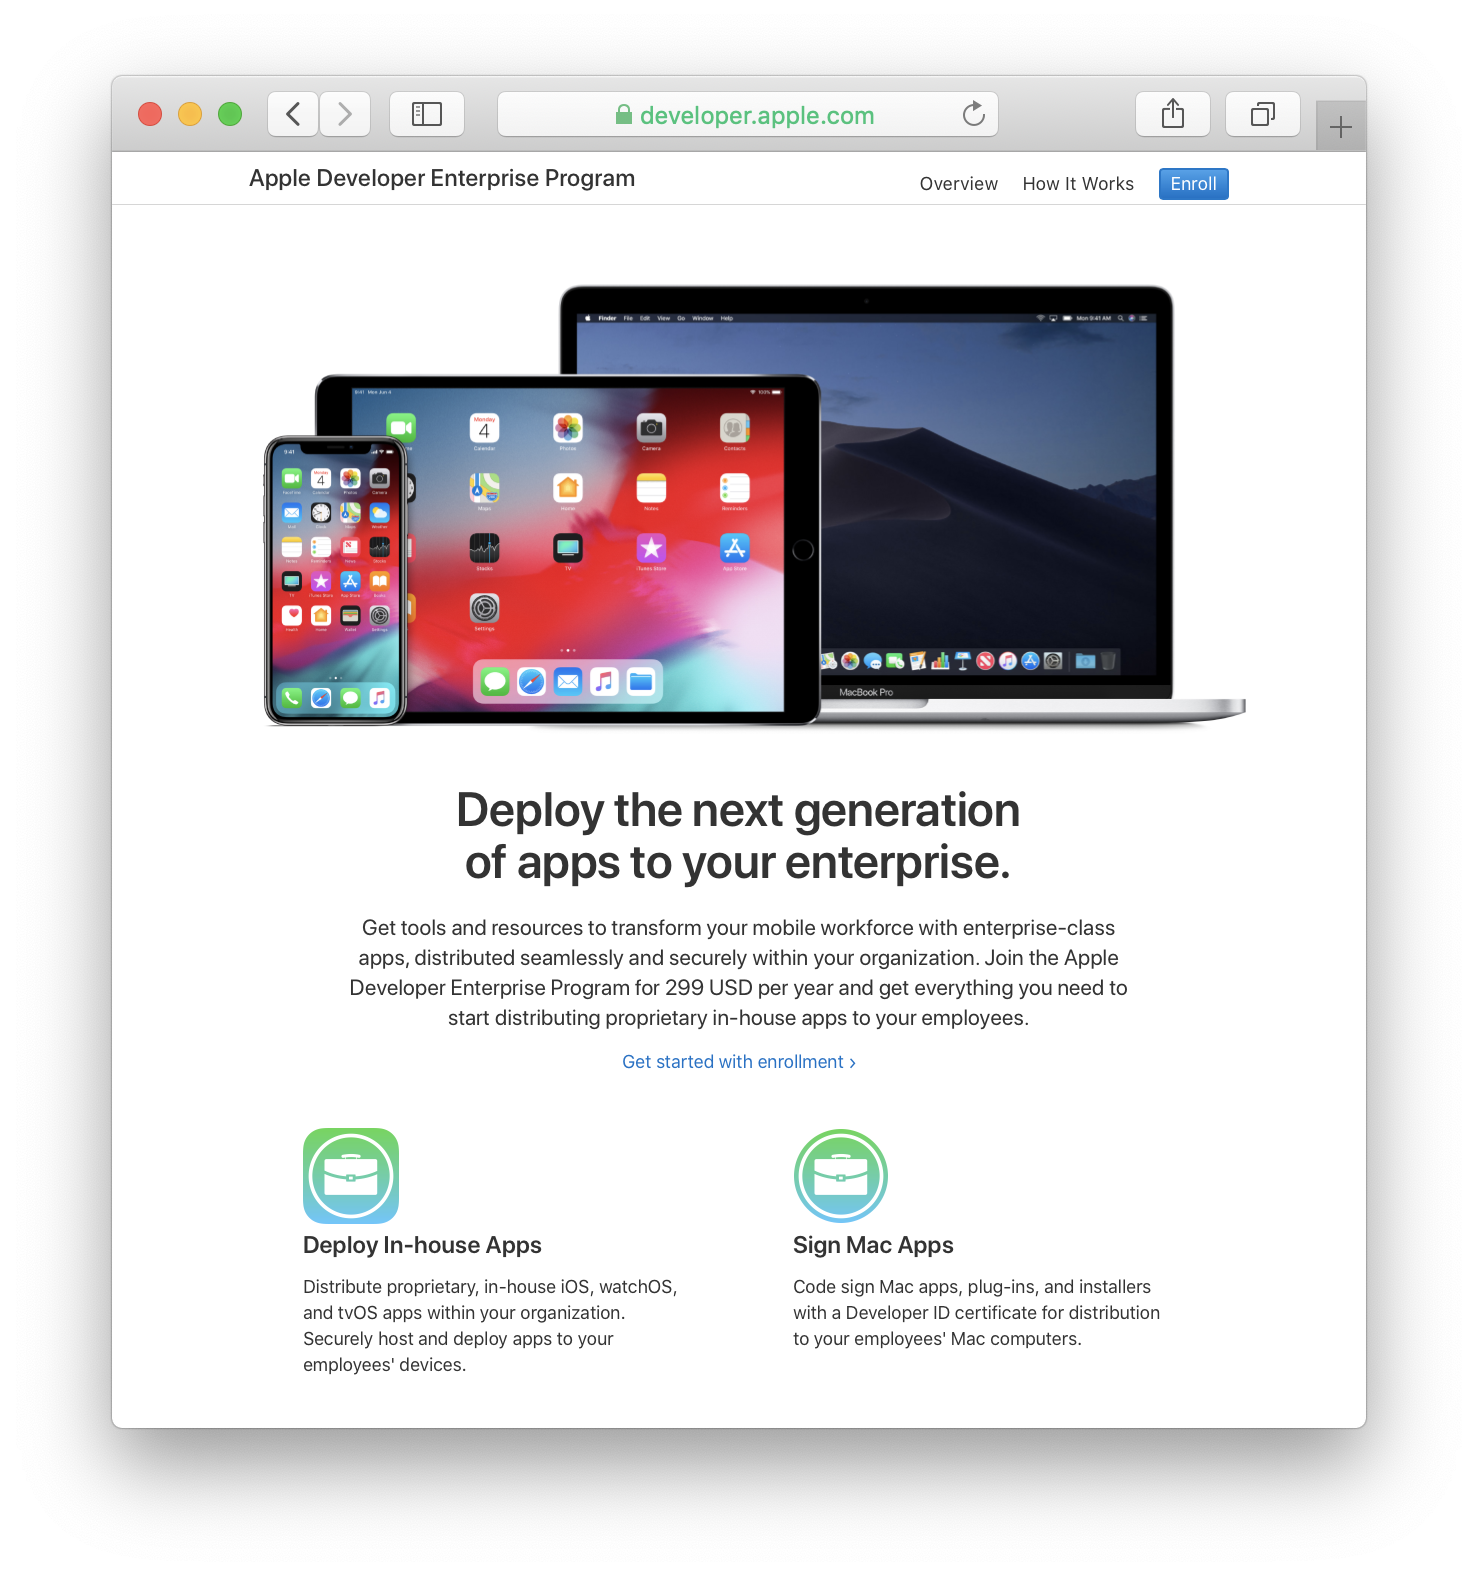 The Apple Developer Enterprise Program lets you distribute your in-house apps to your own employees